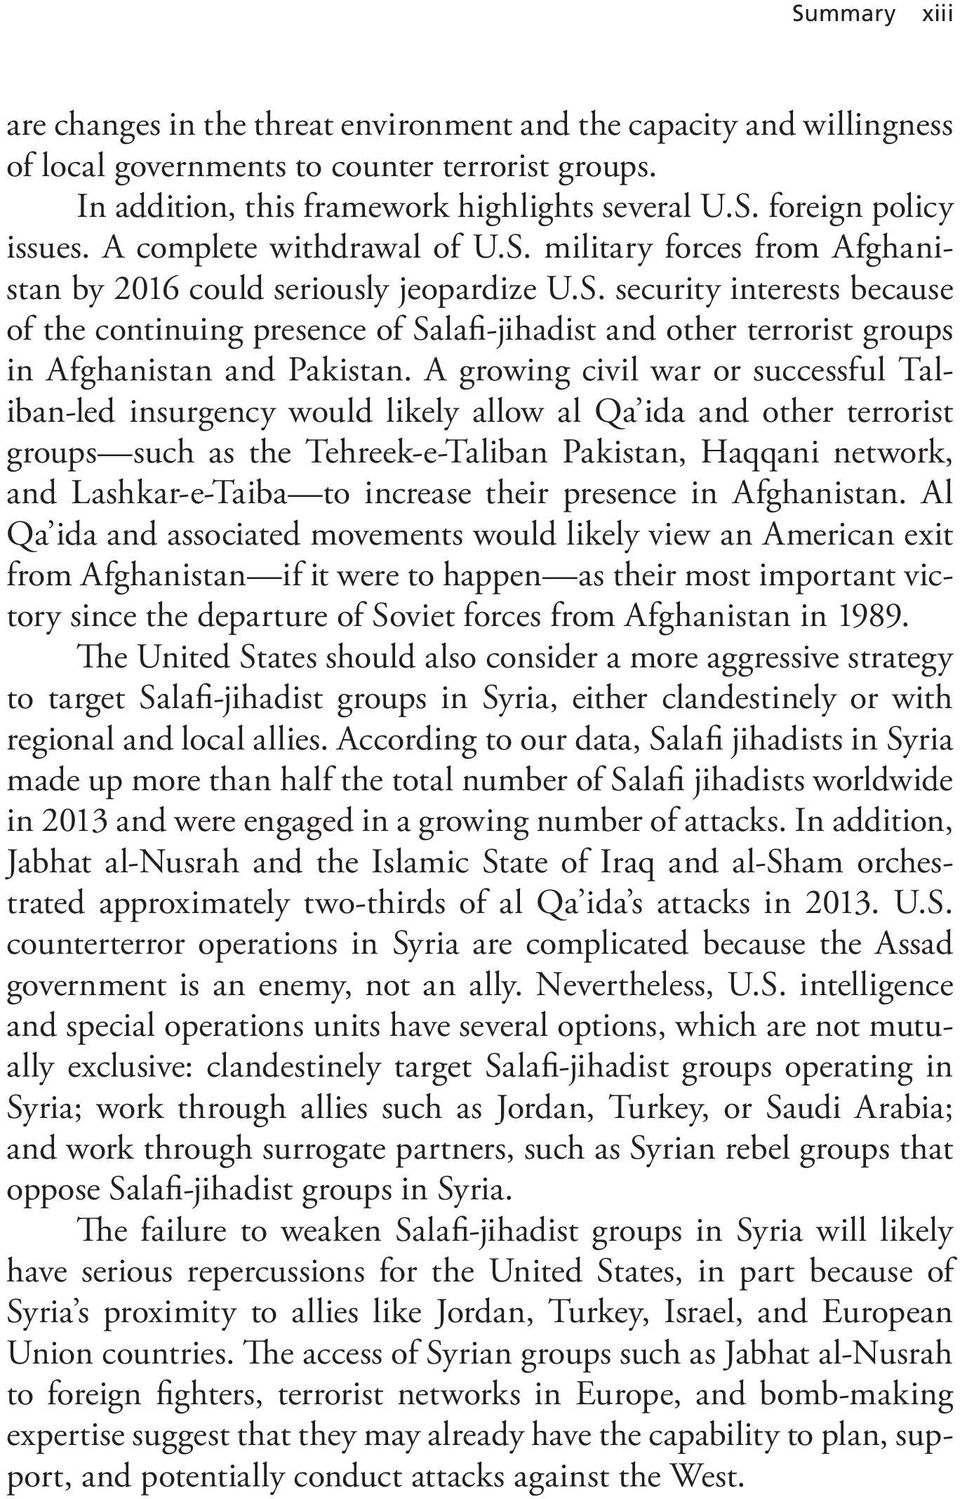 A growing civil war or successful Taliban-led insurgency would likely allow al Qa ida and other terrorist groups such as the Tehreek-e-Taliban Pakistan, Haqqani network, and Lashkar-e-Taiba to